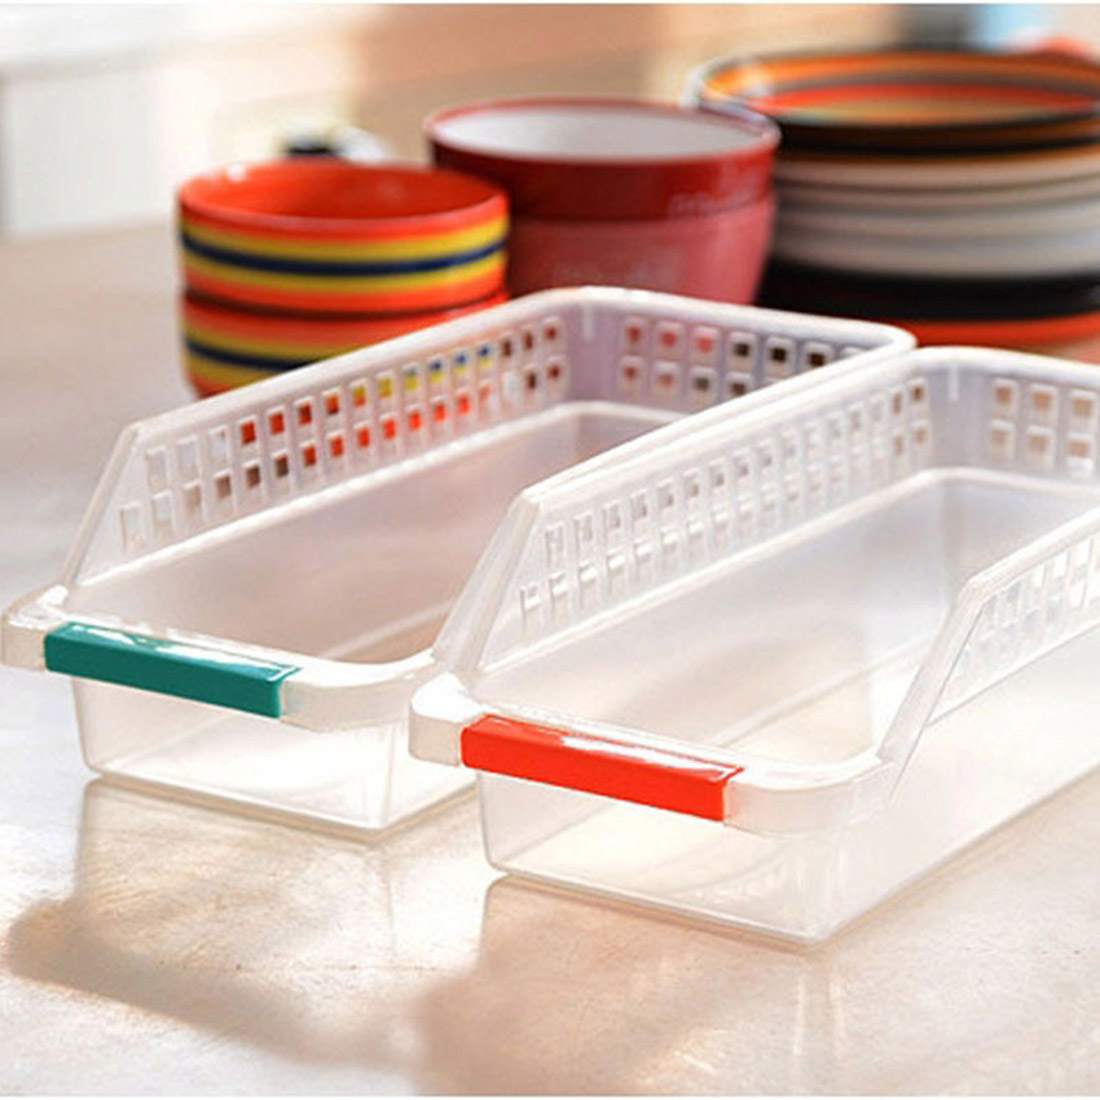 Hot sale 1Pcs Household Refrigerator Plastic Storage Box fresh spacer layer Container For The Kitchen Tool